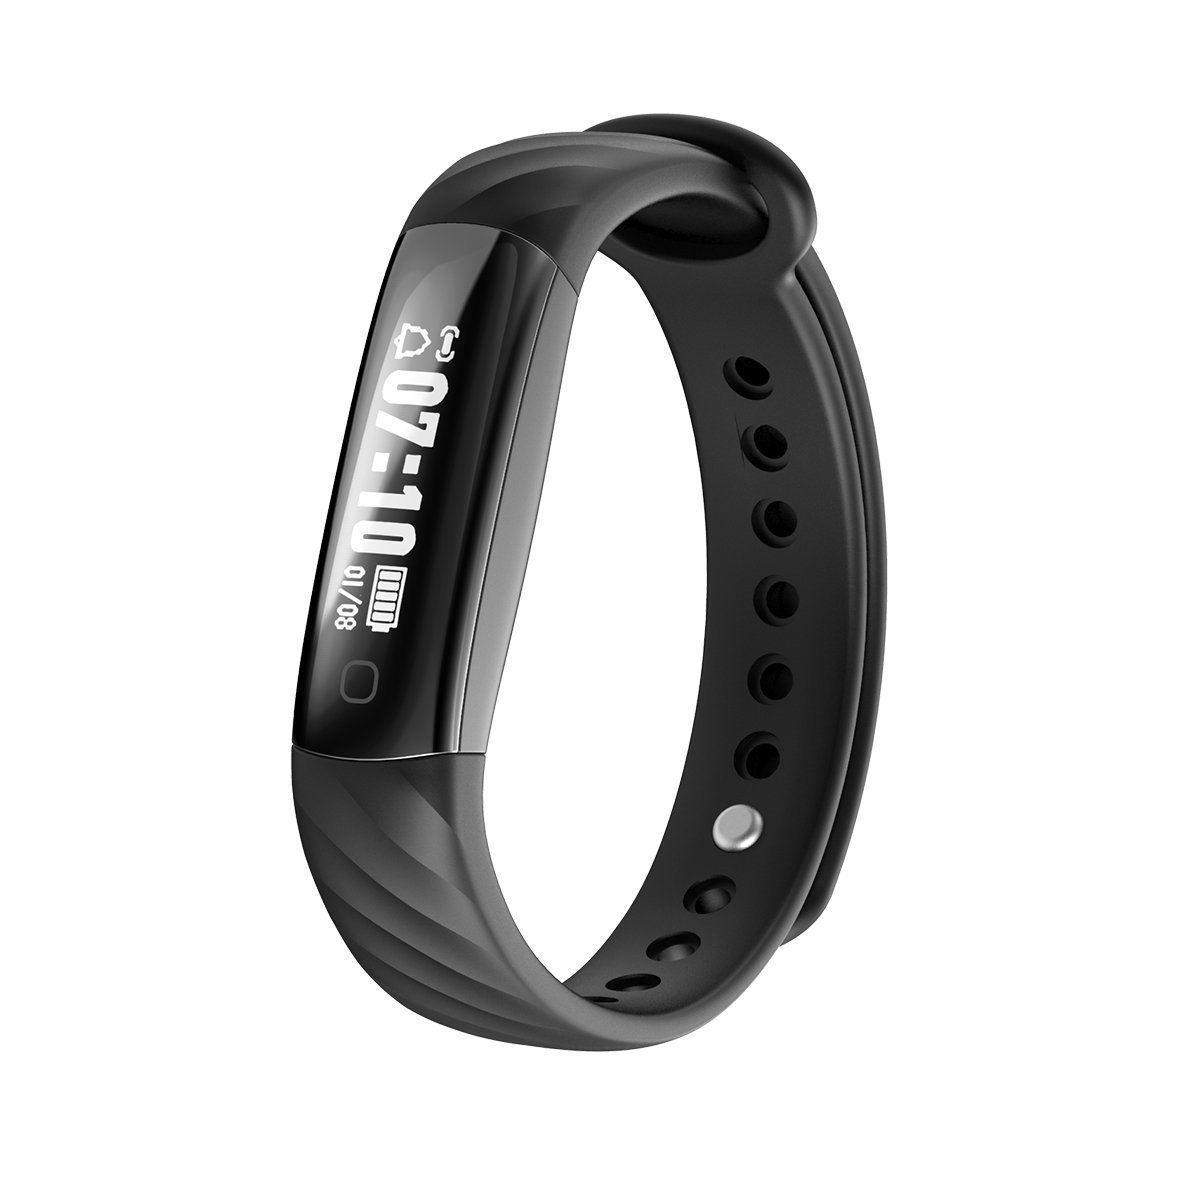 Loping Fitness Tracker, Slim Waterproof Activity Tracker with Sleep Monitor, Pedometer Smart Bracelet Fitness Watch Wristband for iOS & Android Smartphone (Black)